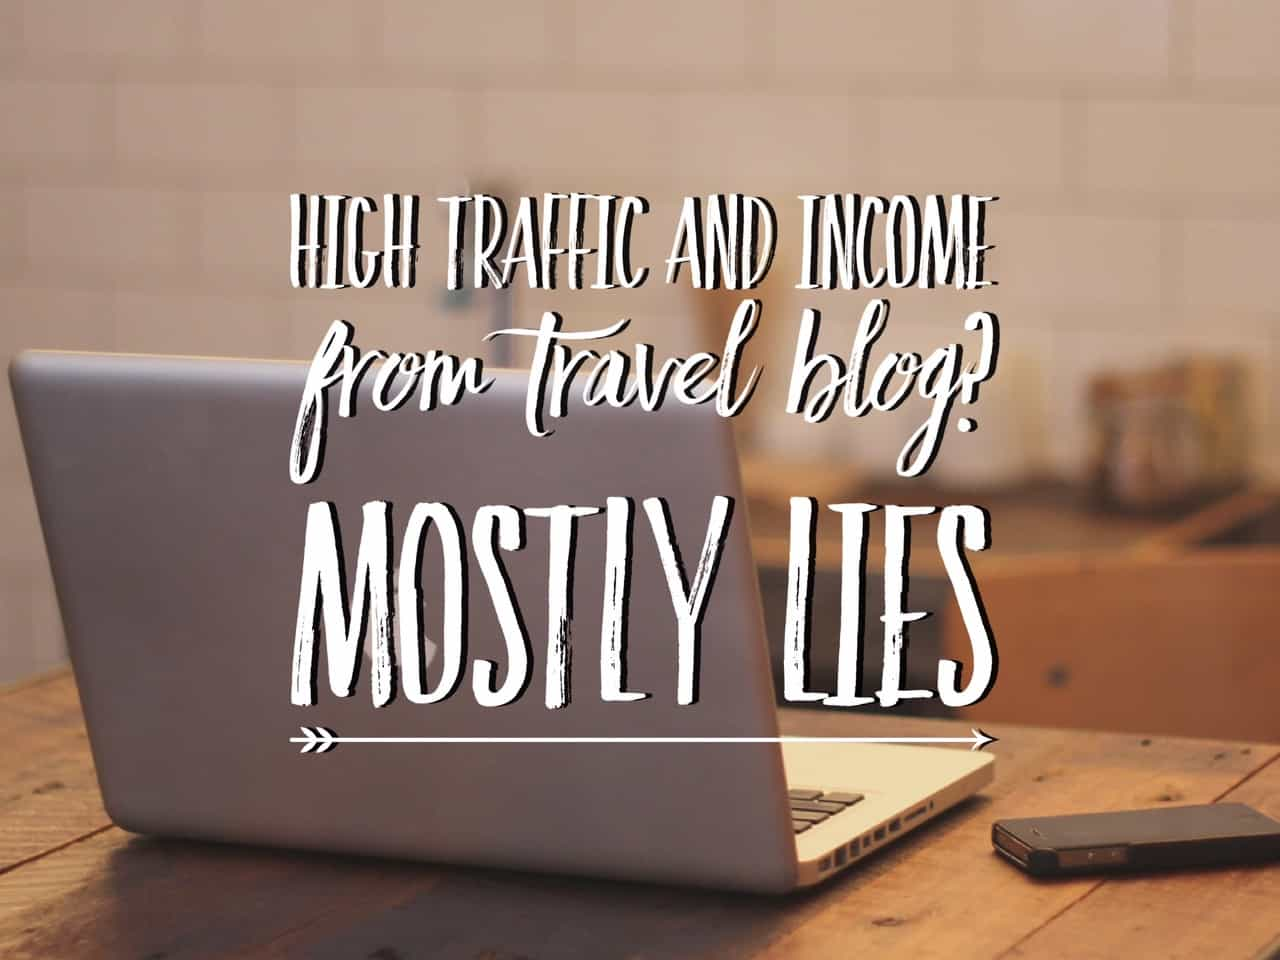 High traffic and income from travel blog - lies